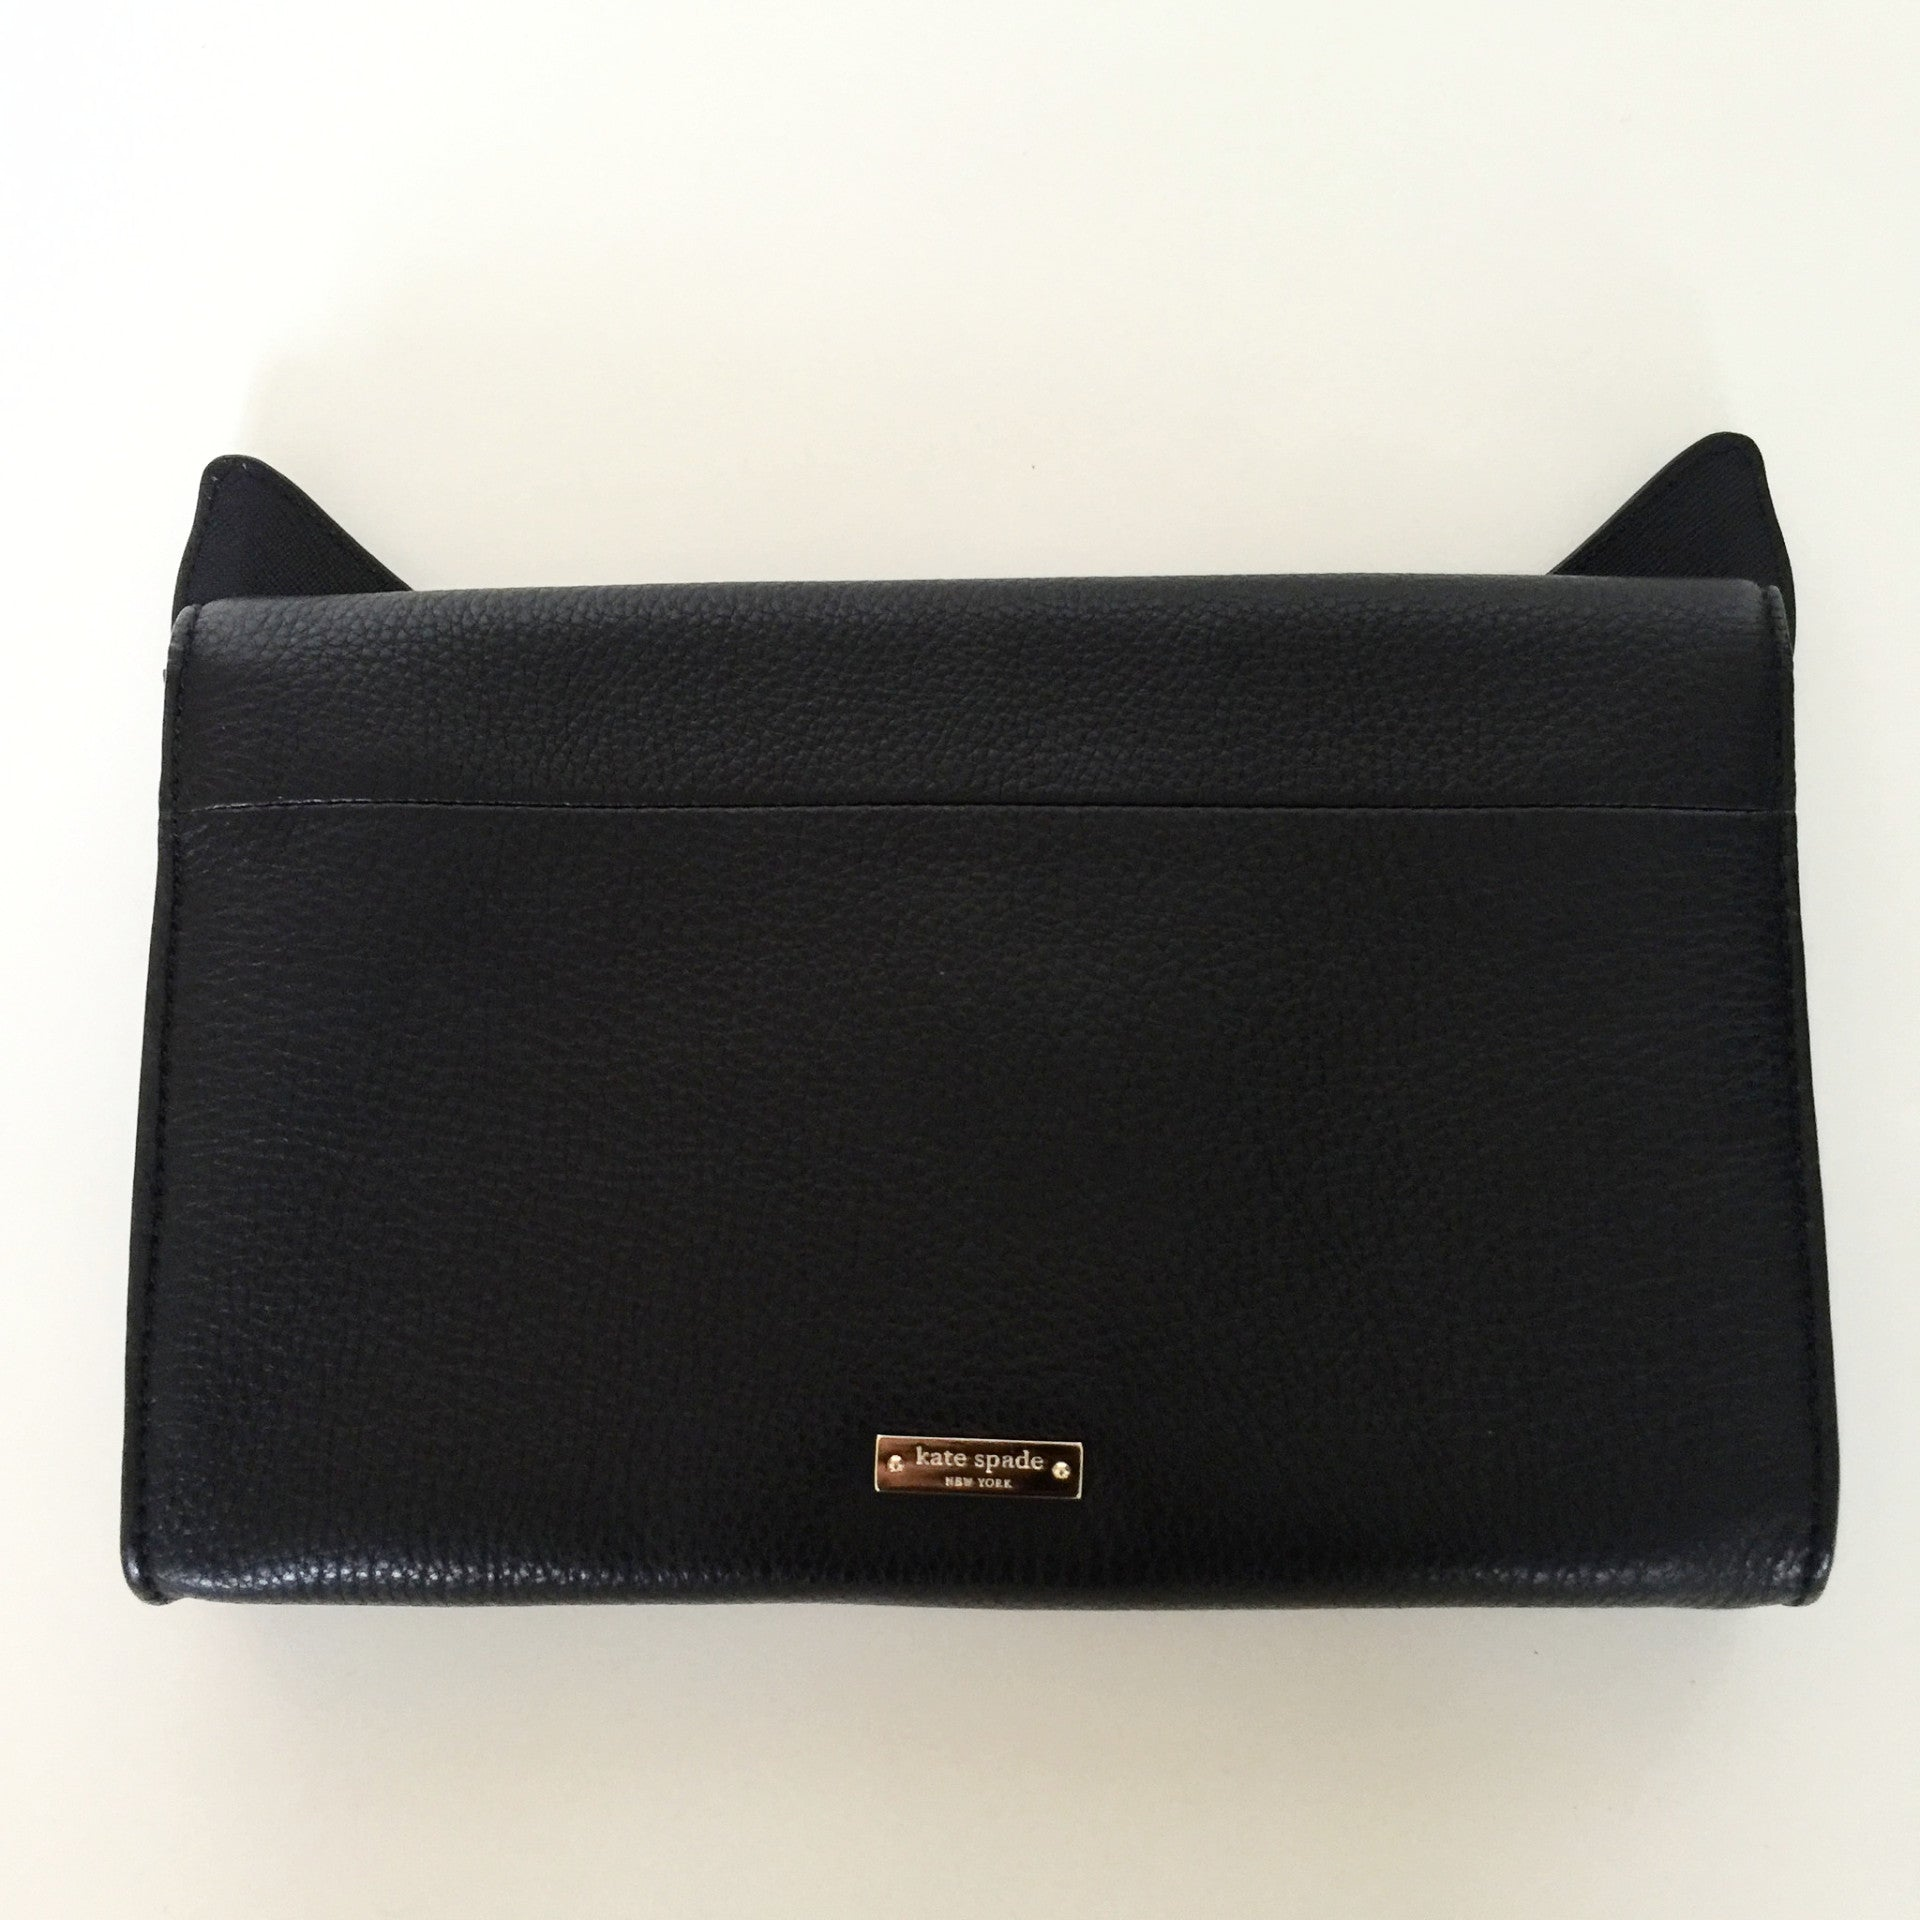 Authentic KATE SPADE Fox Clutch